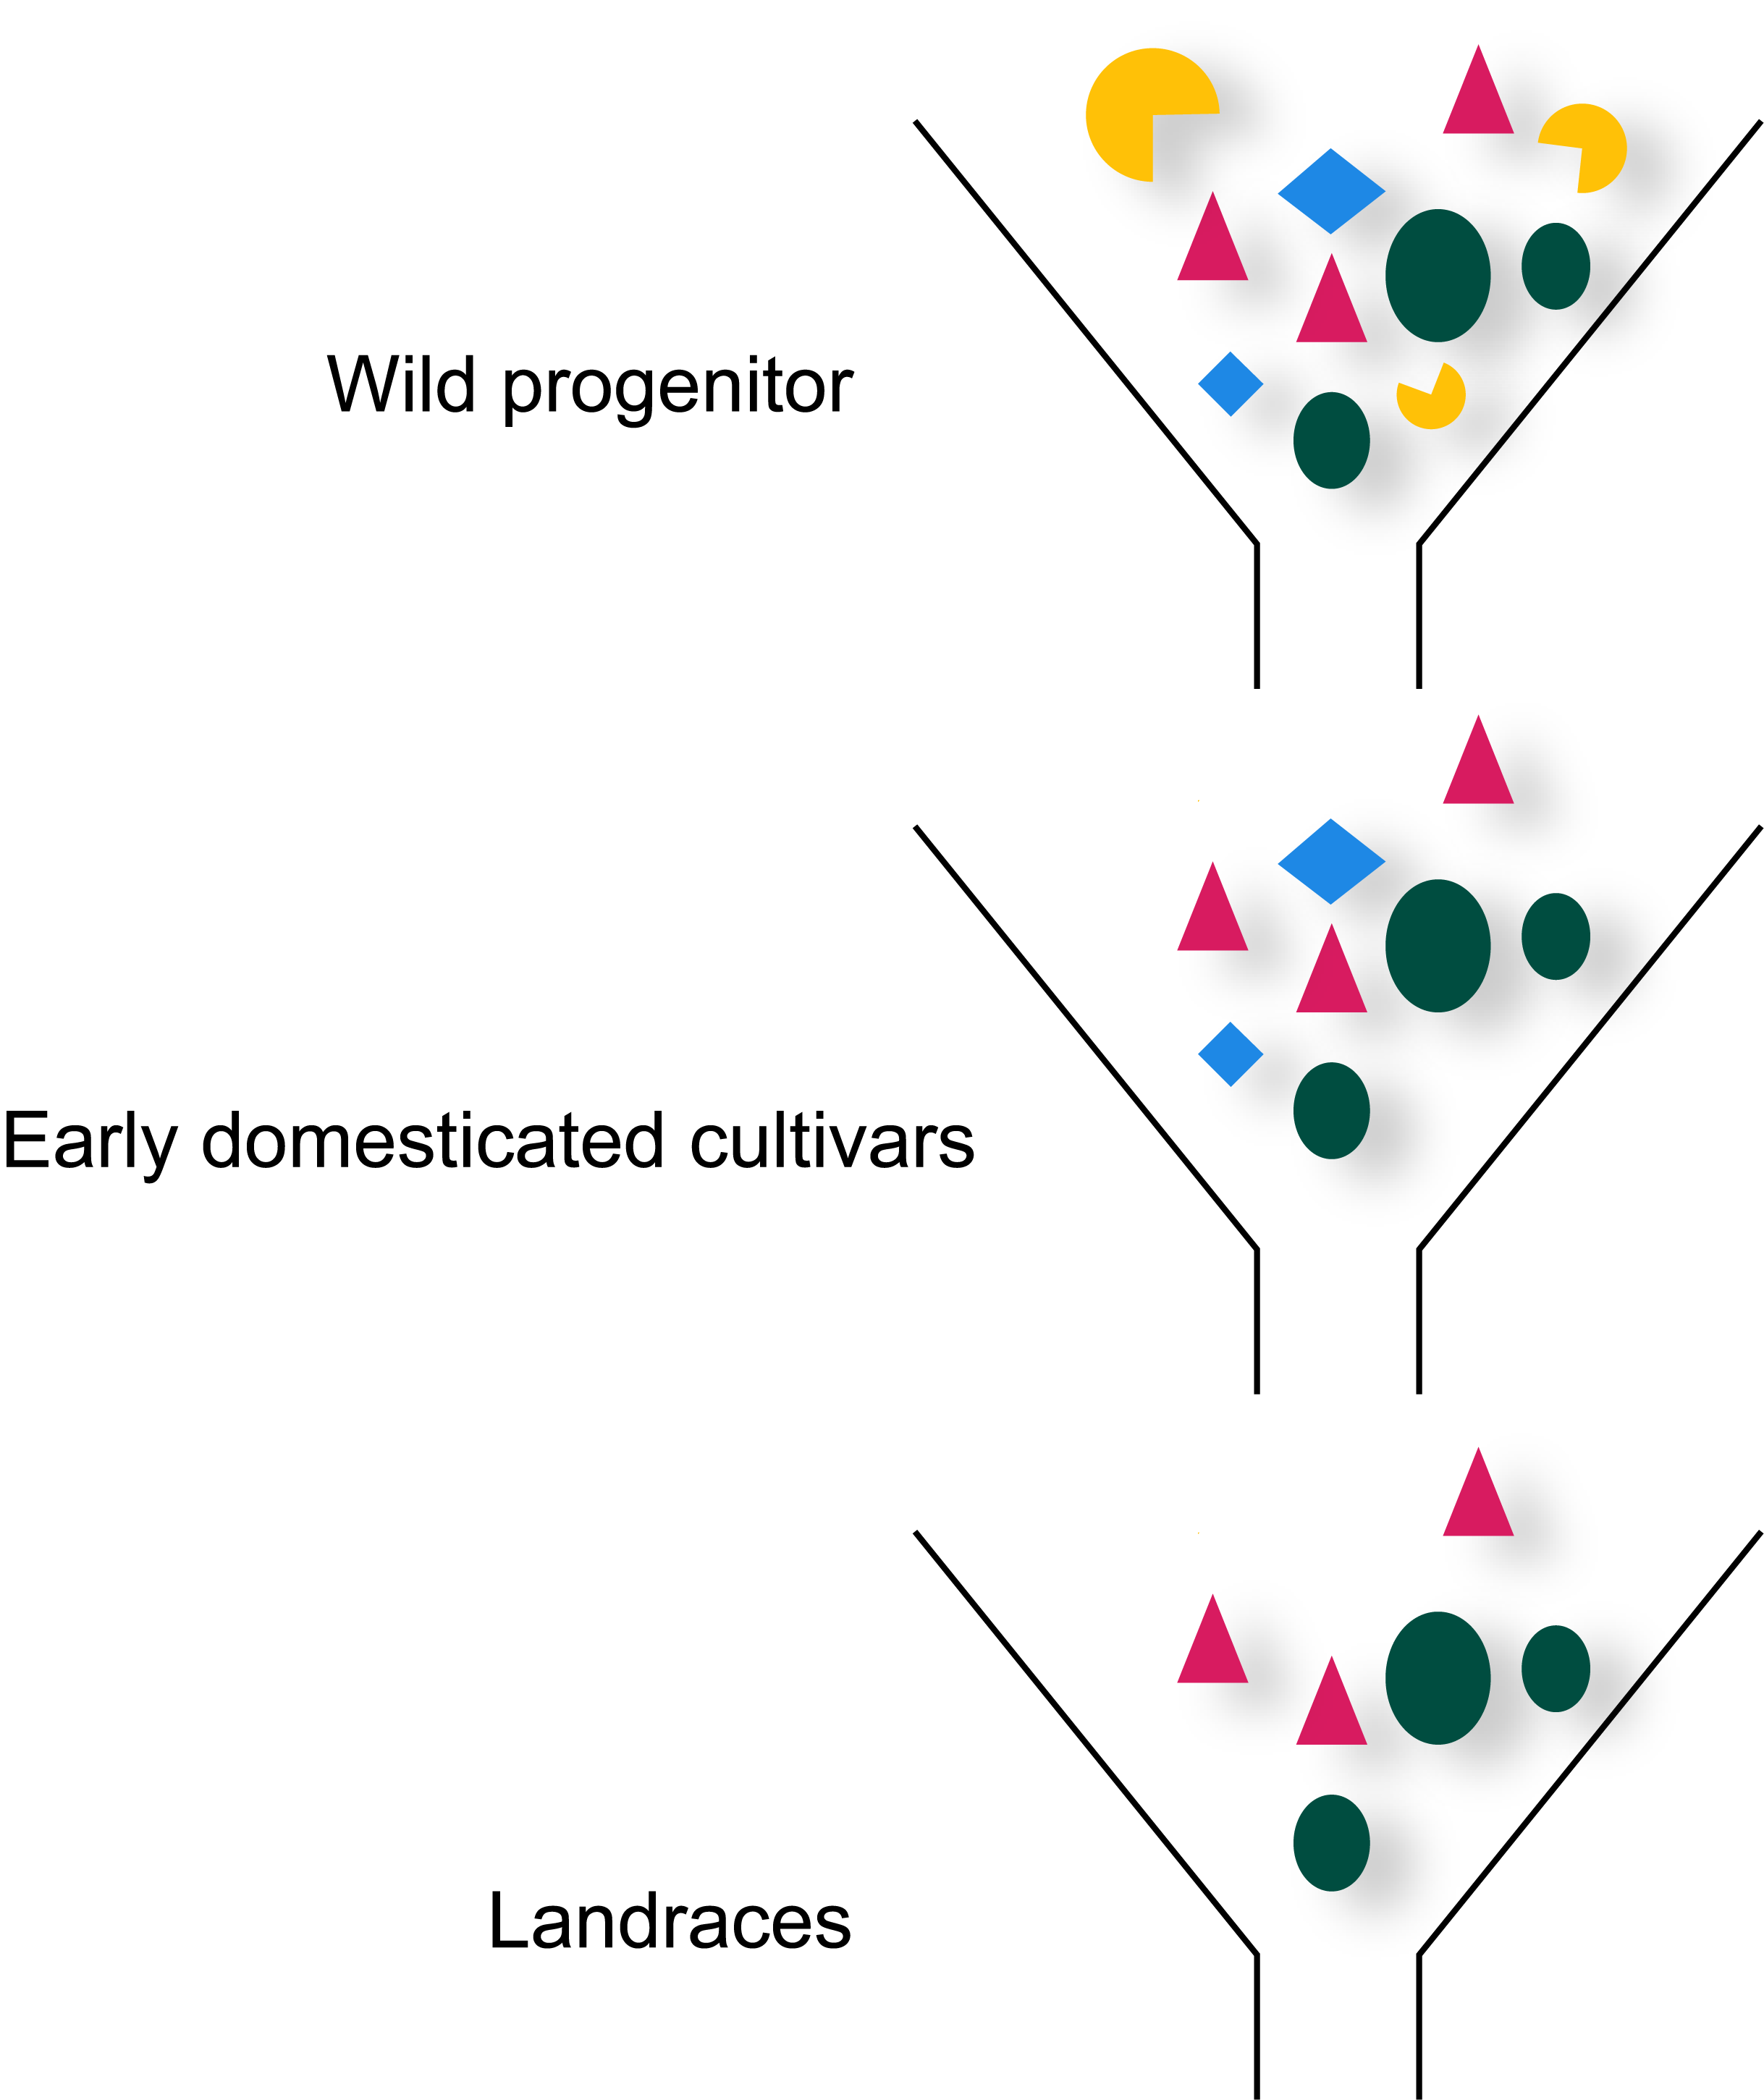 Loss of gene pool during crop domestication due to artificial selection.